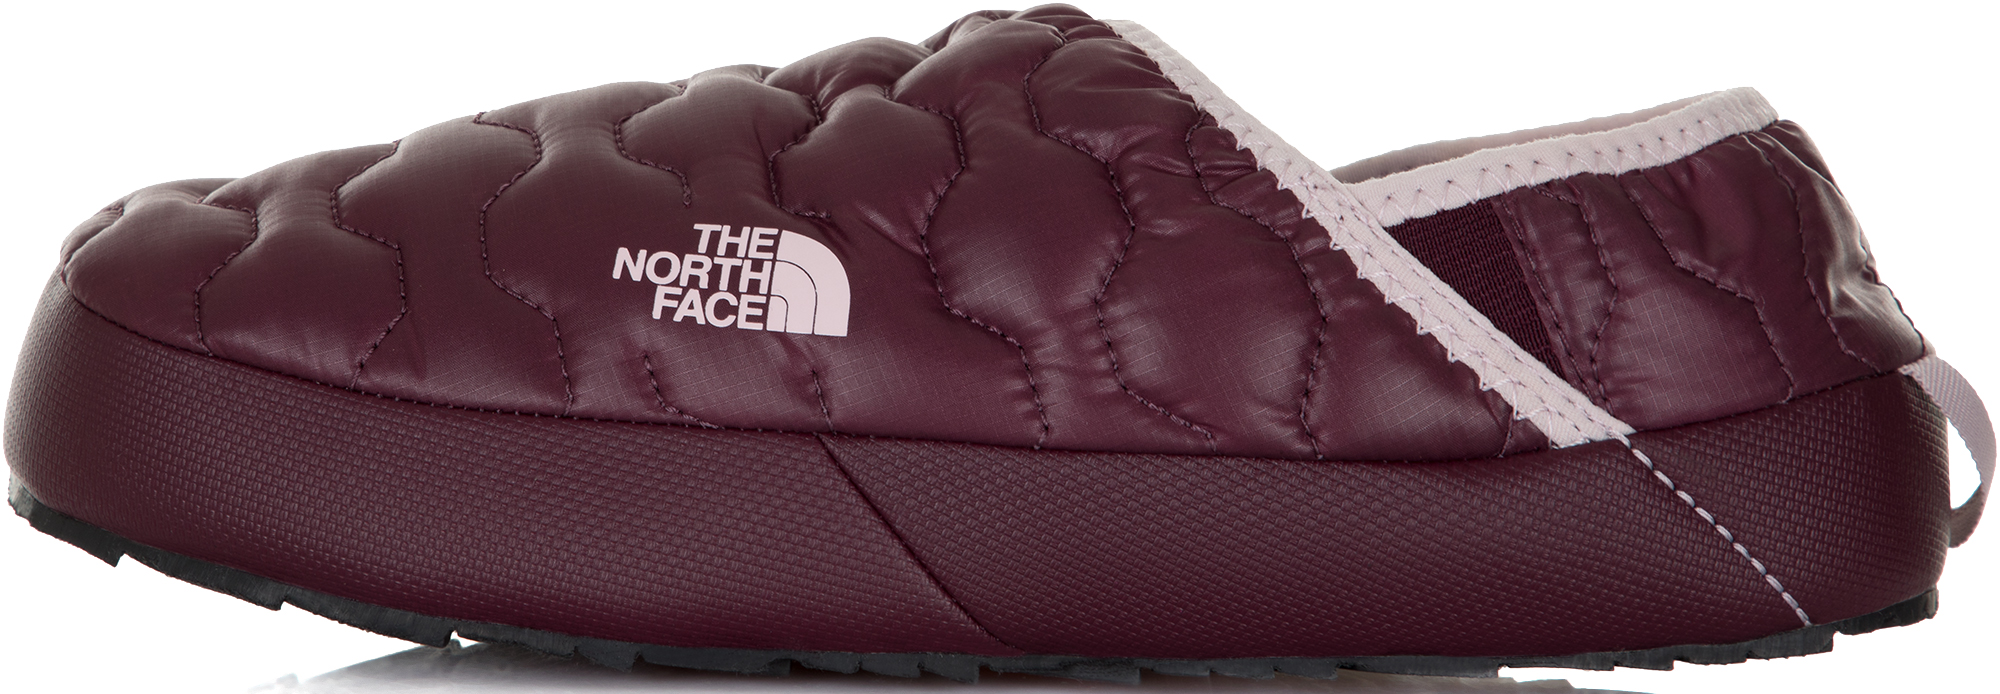 The North Face Полуботинки утепленные женские The North Face ThermoBall Traction Mule IV, размер 39 цена 2017